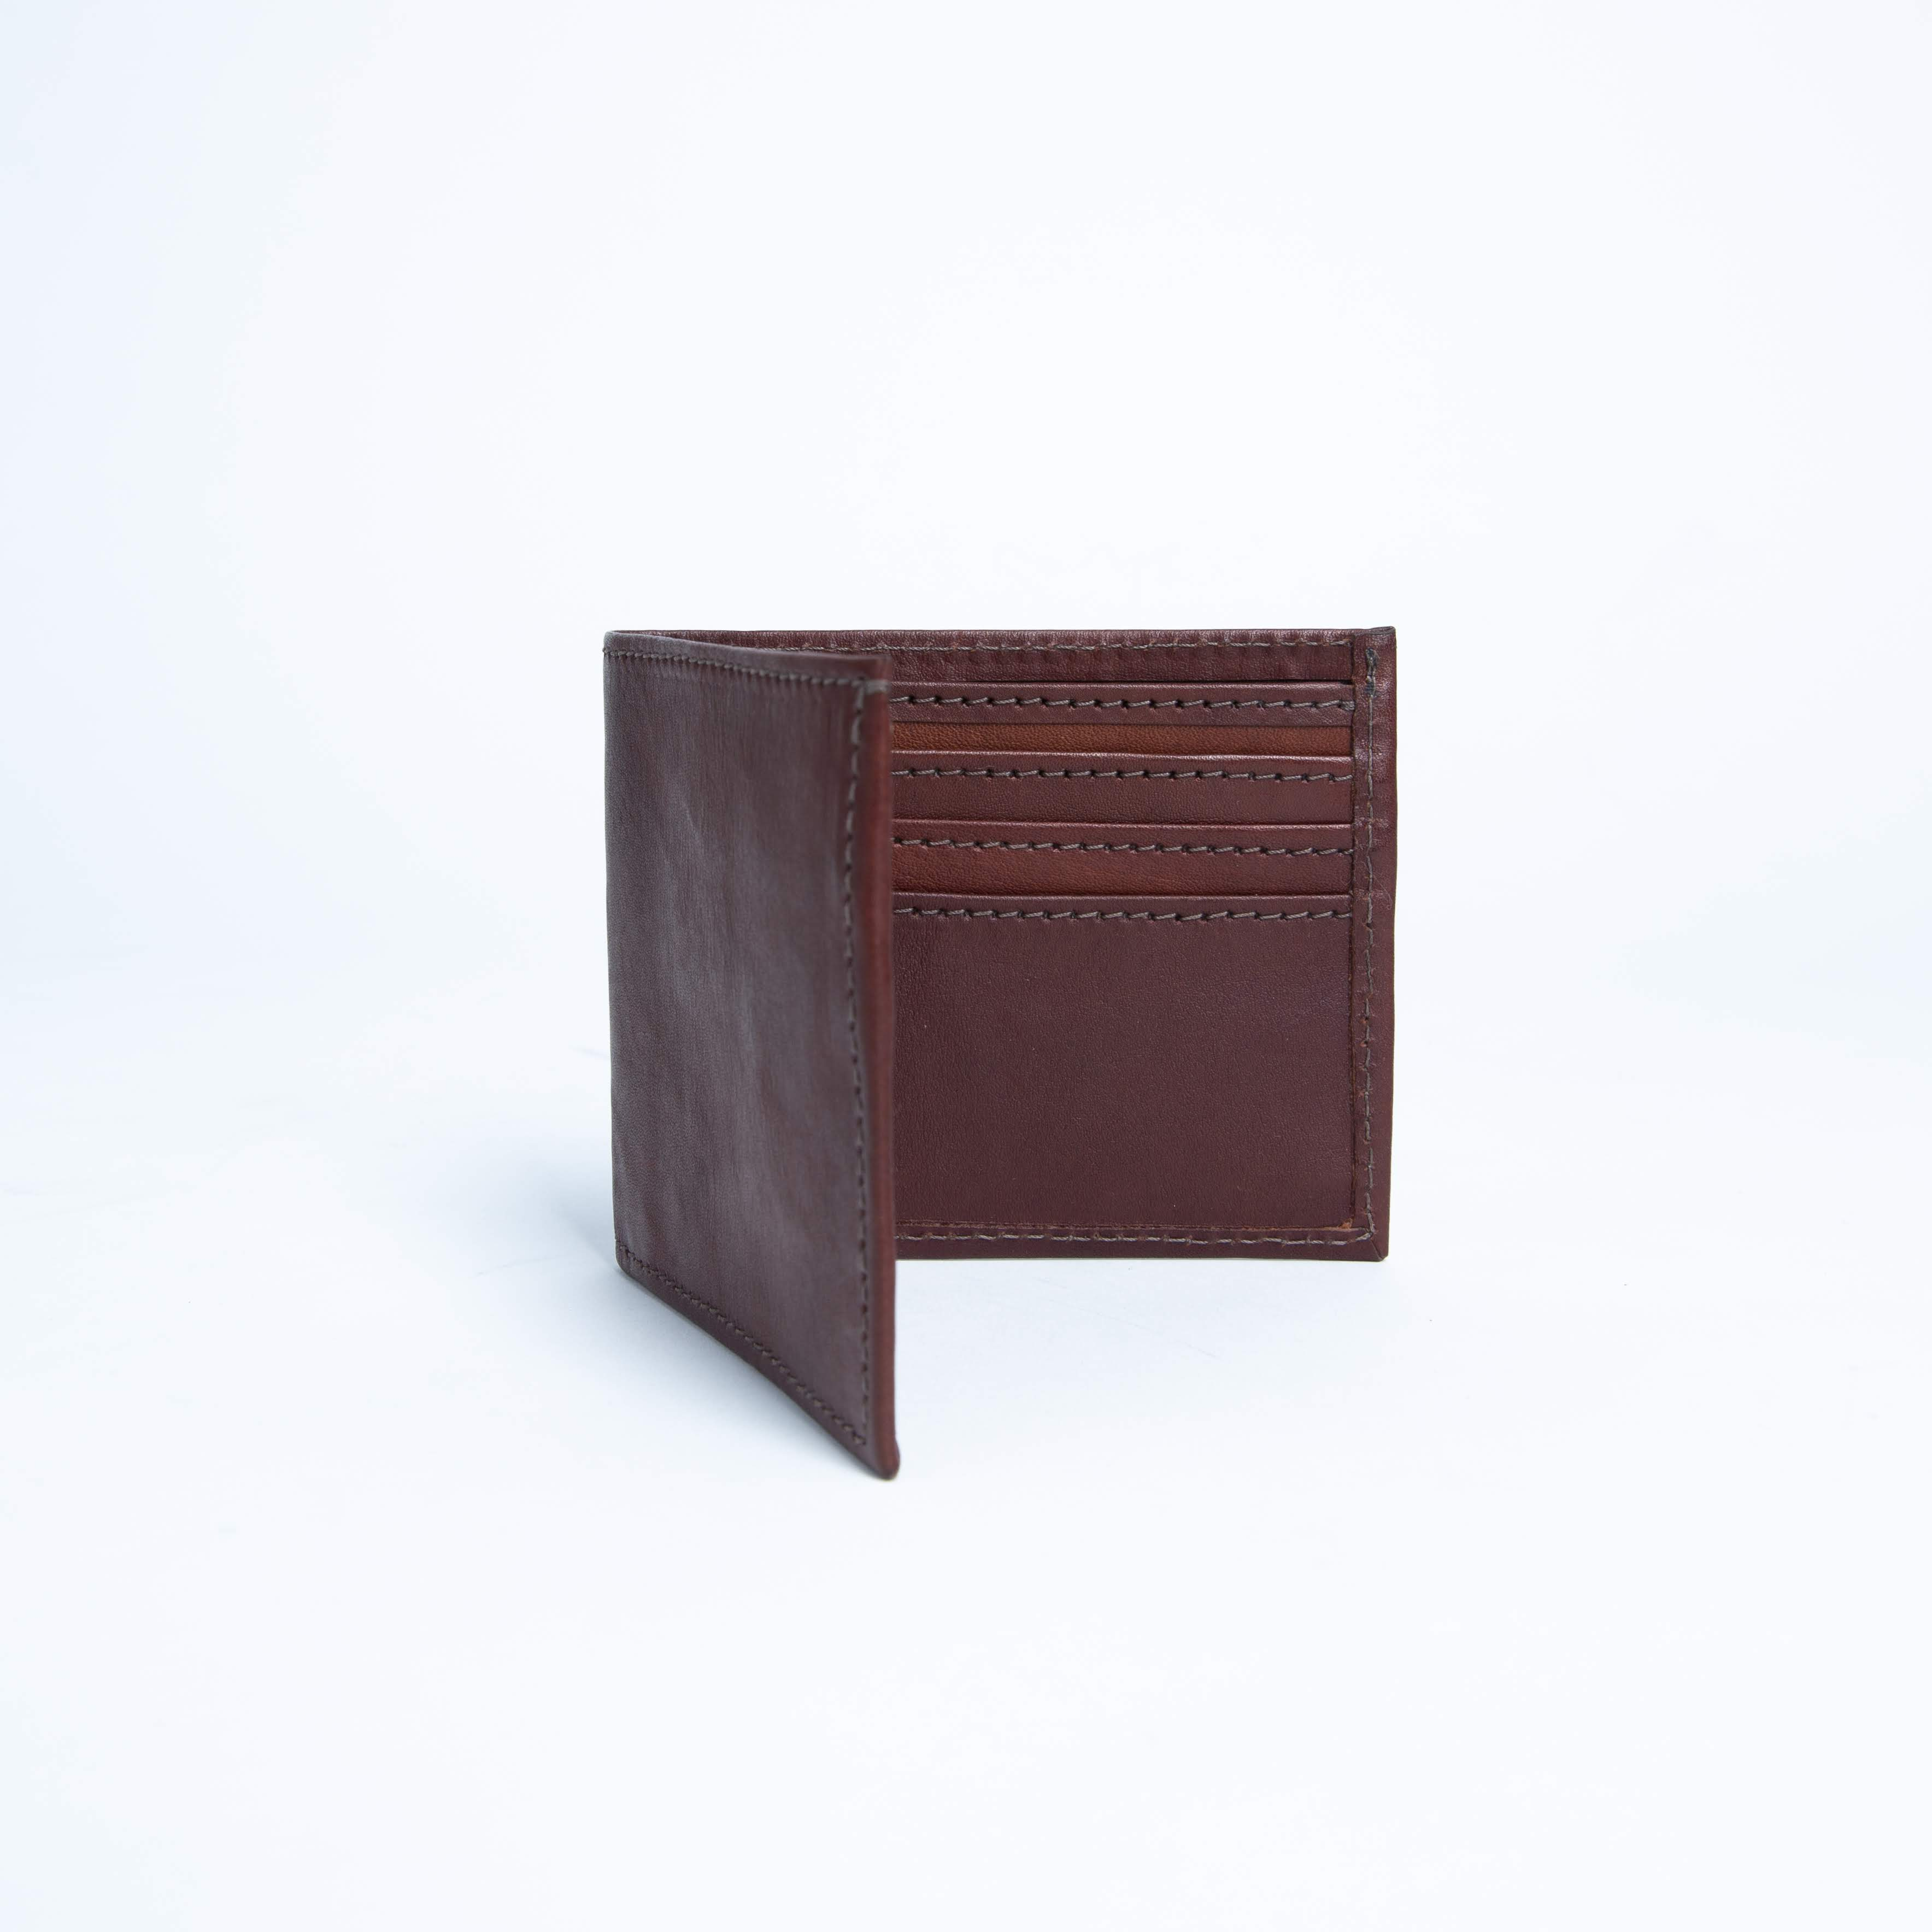 Bati | Brown Leather Bifold Wallet | Quality Handmade Leather Goods from Paraguay and Argentina  | Leather Wallets, Leather Bifold Wallets, Brown Wallet